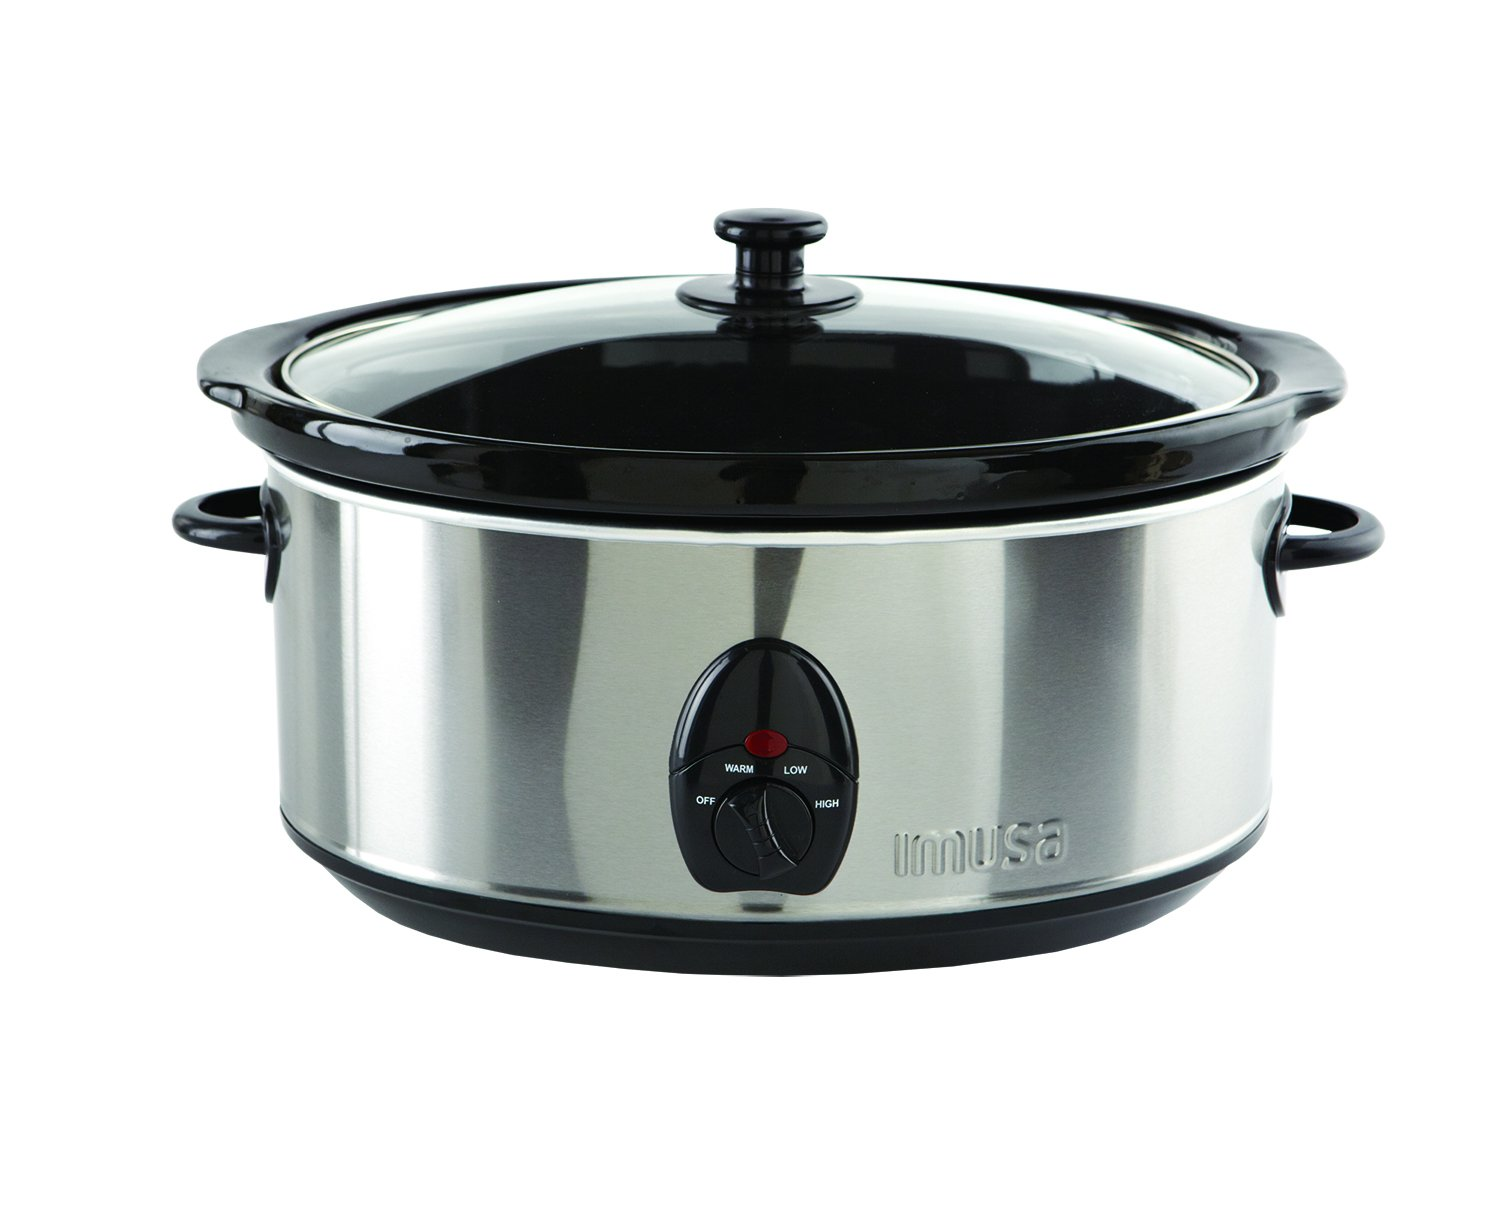 IMUSA USA IMU-01975 Stainless Steel Slow Cooker with Glass Lid, Stainless Steel